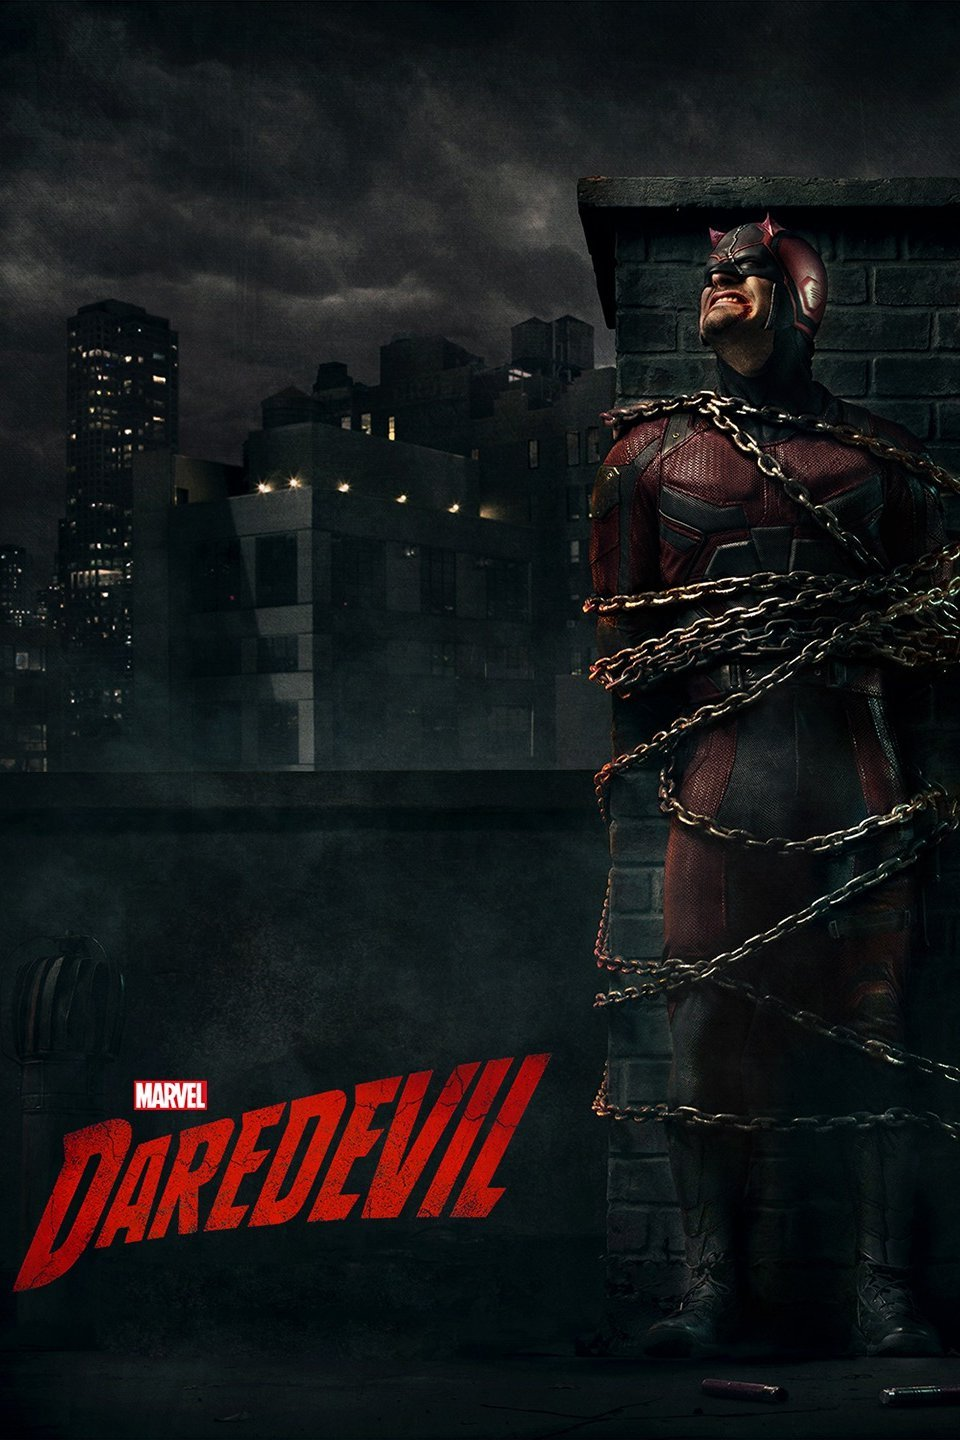 Daredevil Season 1-Marvel's Daredevil: Season 1